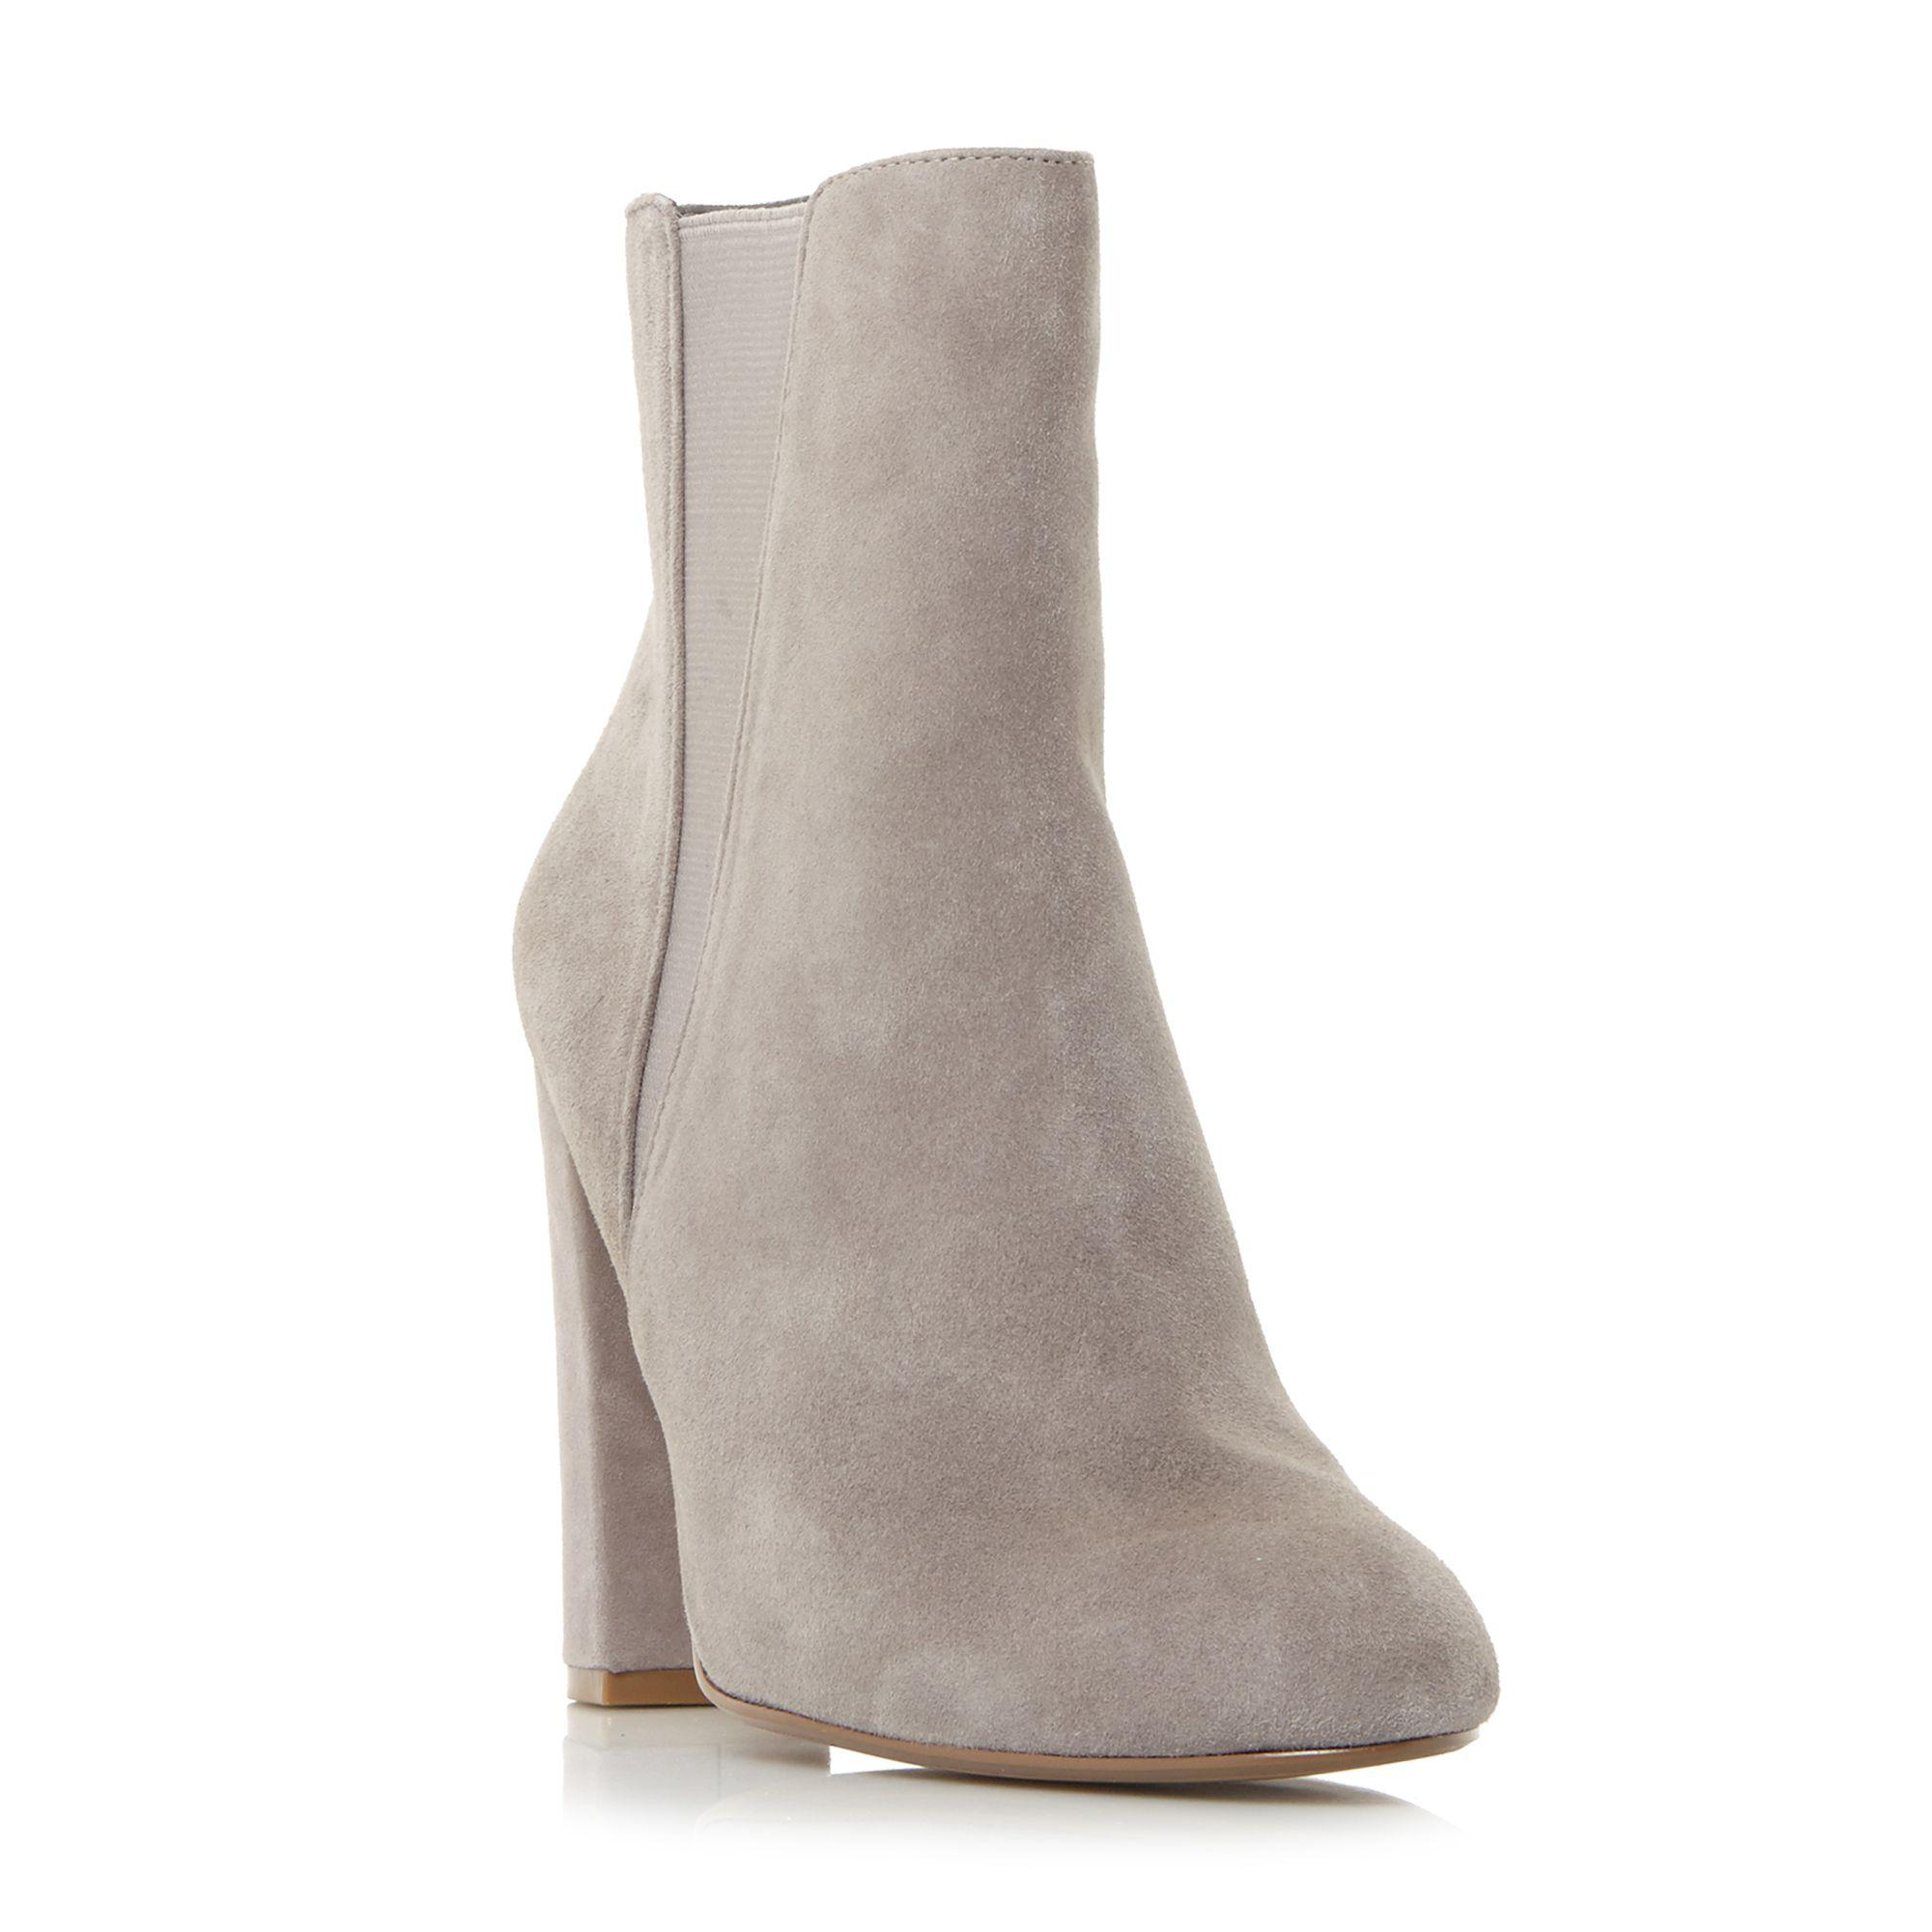 cc0f4755312 Steve Madden Effect Block Heeled Ankle Boots in Gray - Save 40% - Lyst